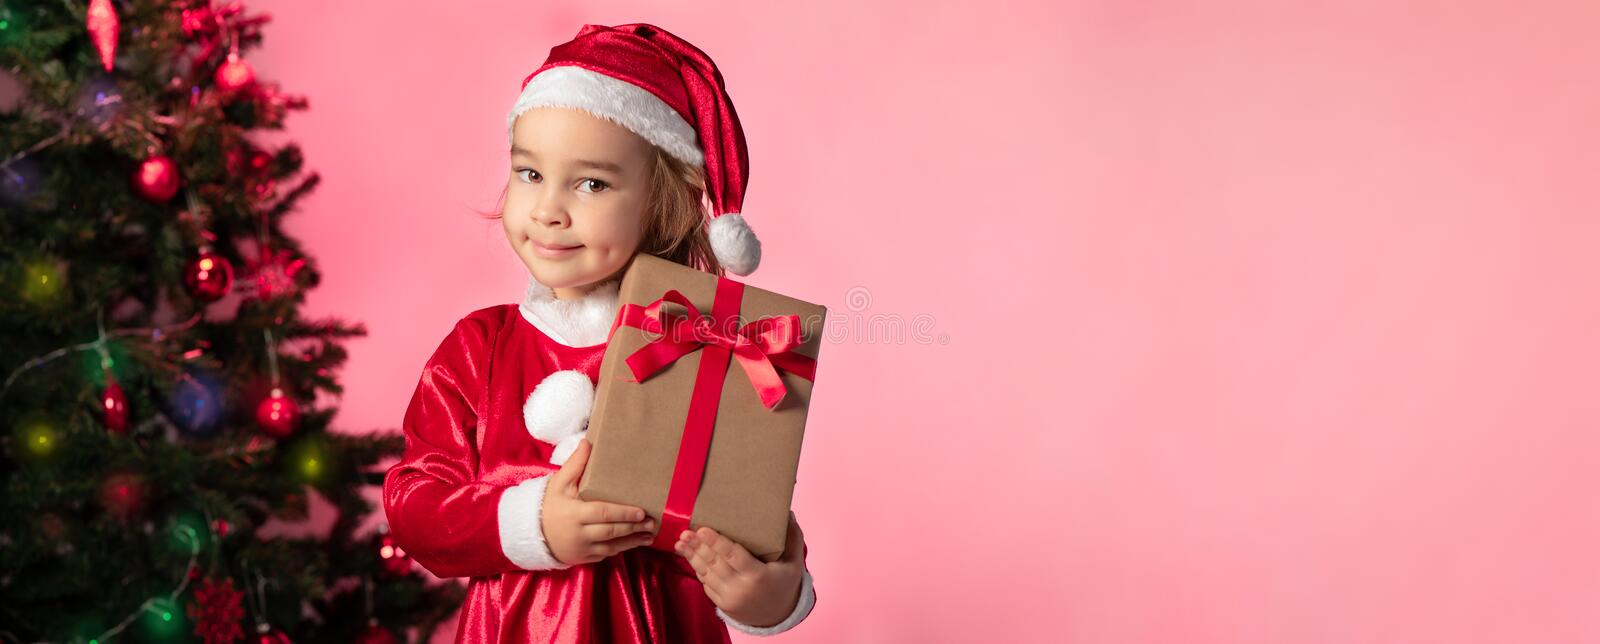 Portrait of Little Adorable Girl in Christmas Costume royalty free stock images